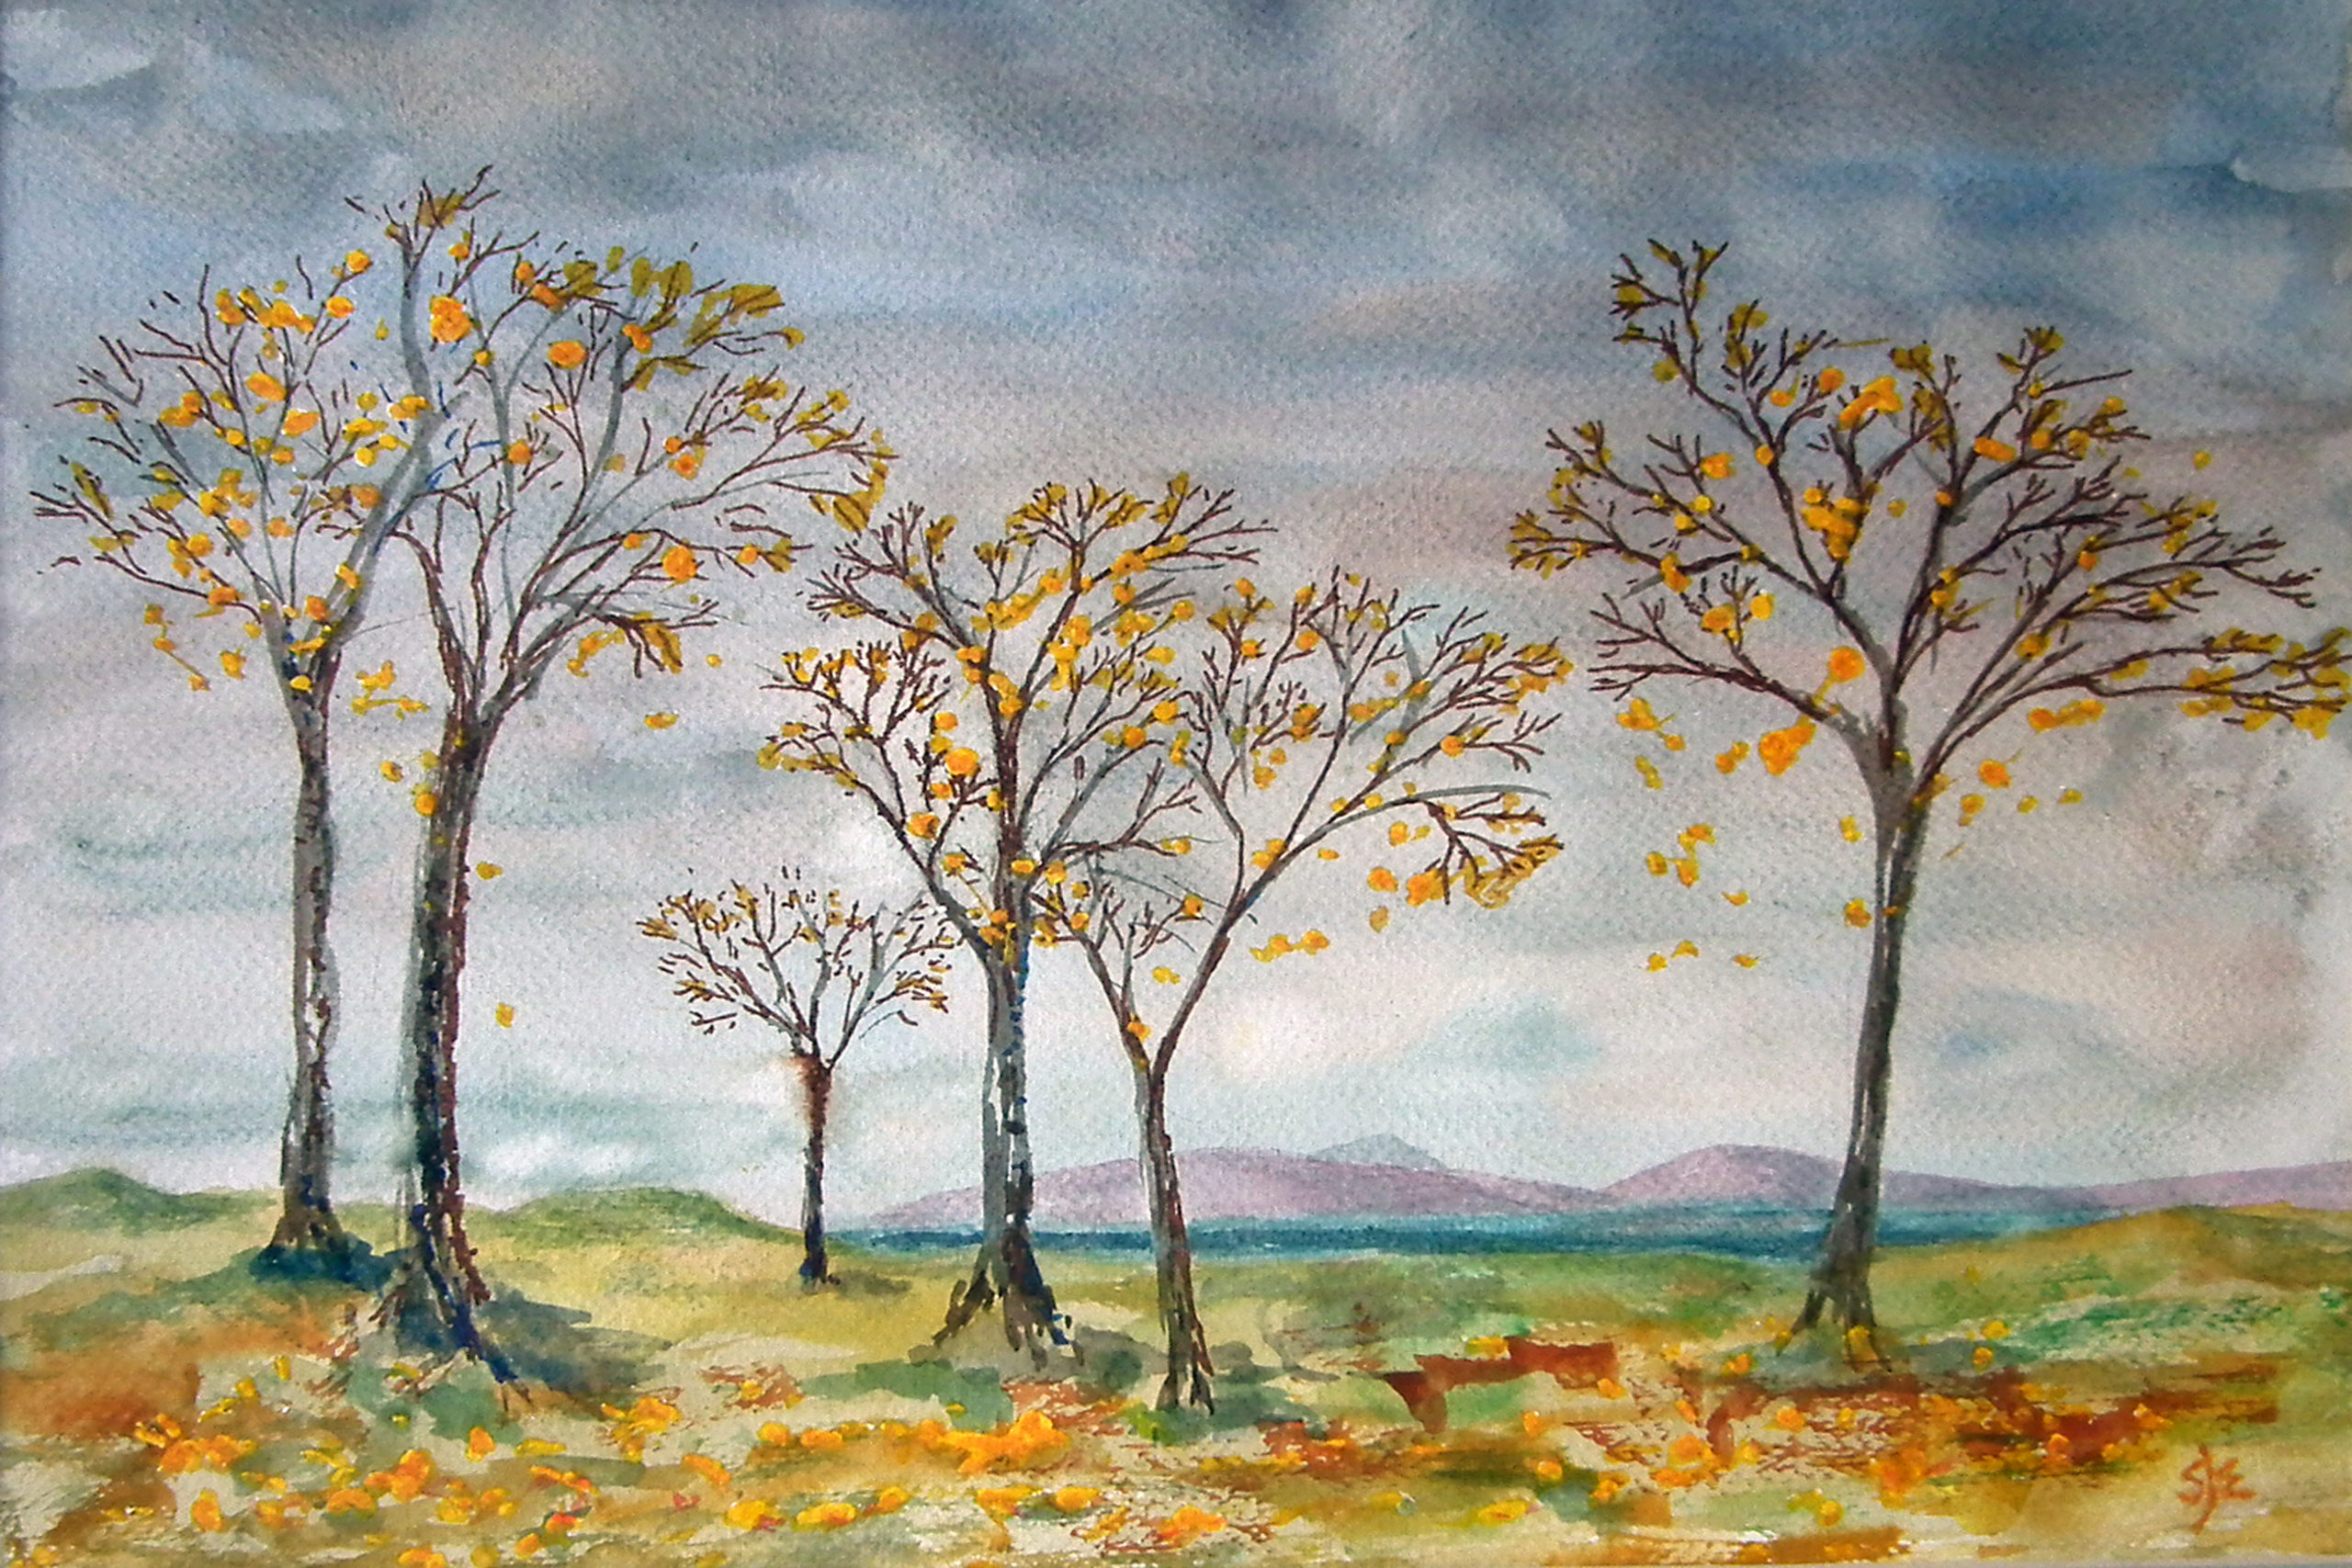 Autumn trees with yellow leaves